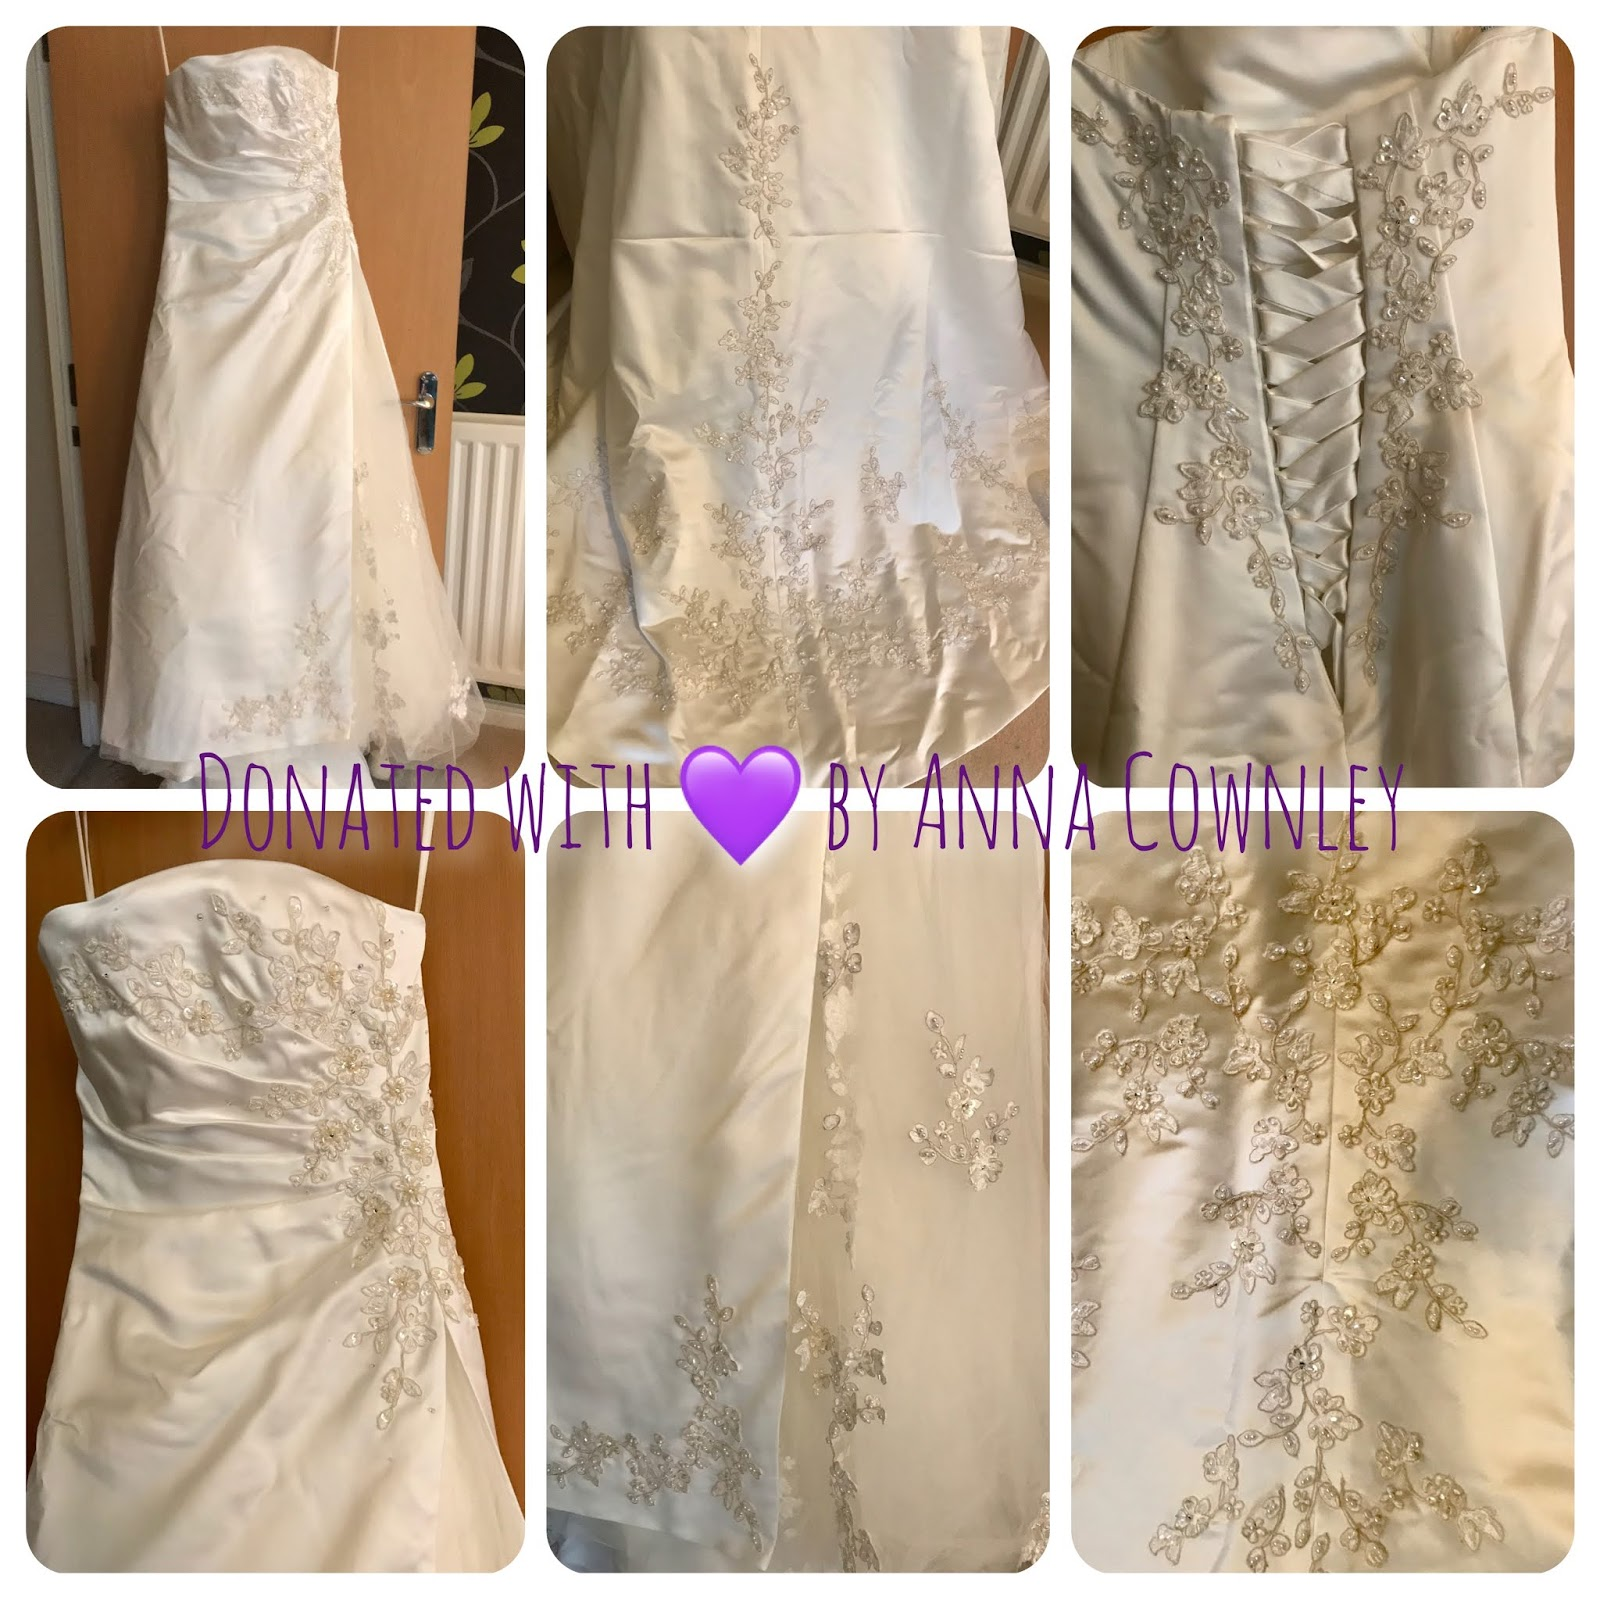 Announcement Wedding Dress Donations